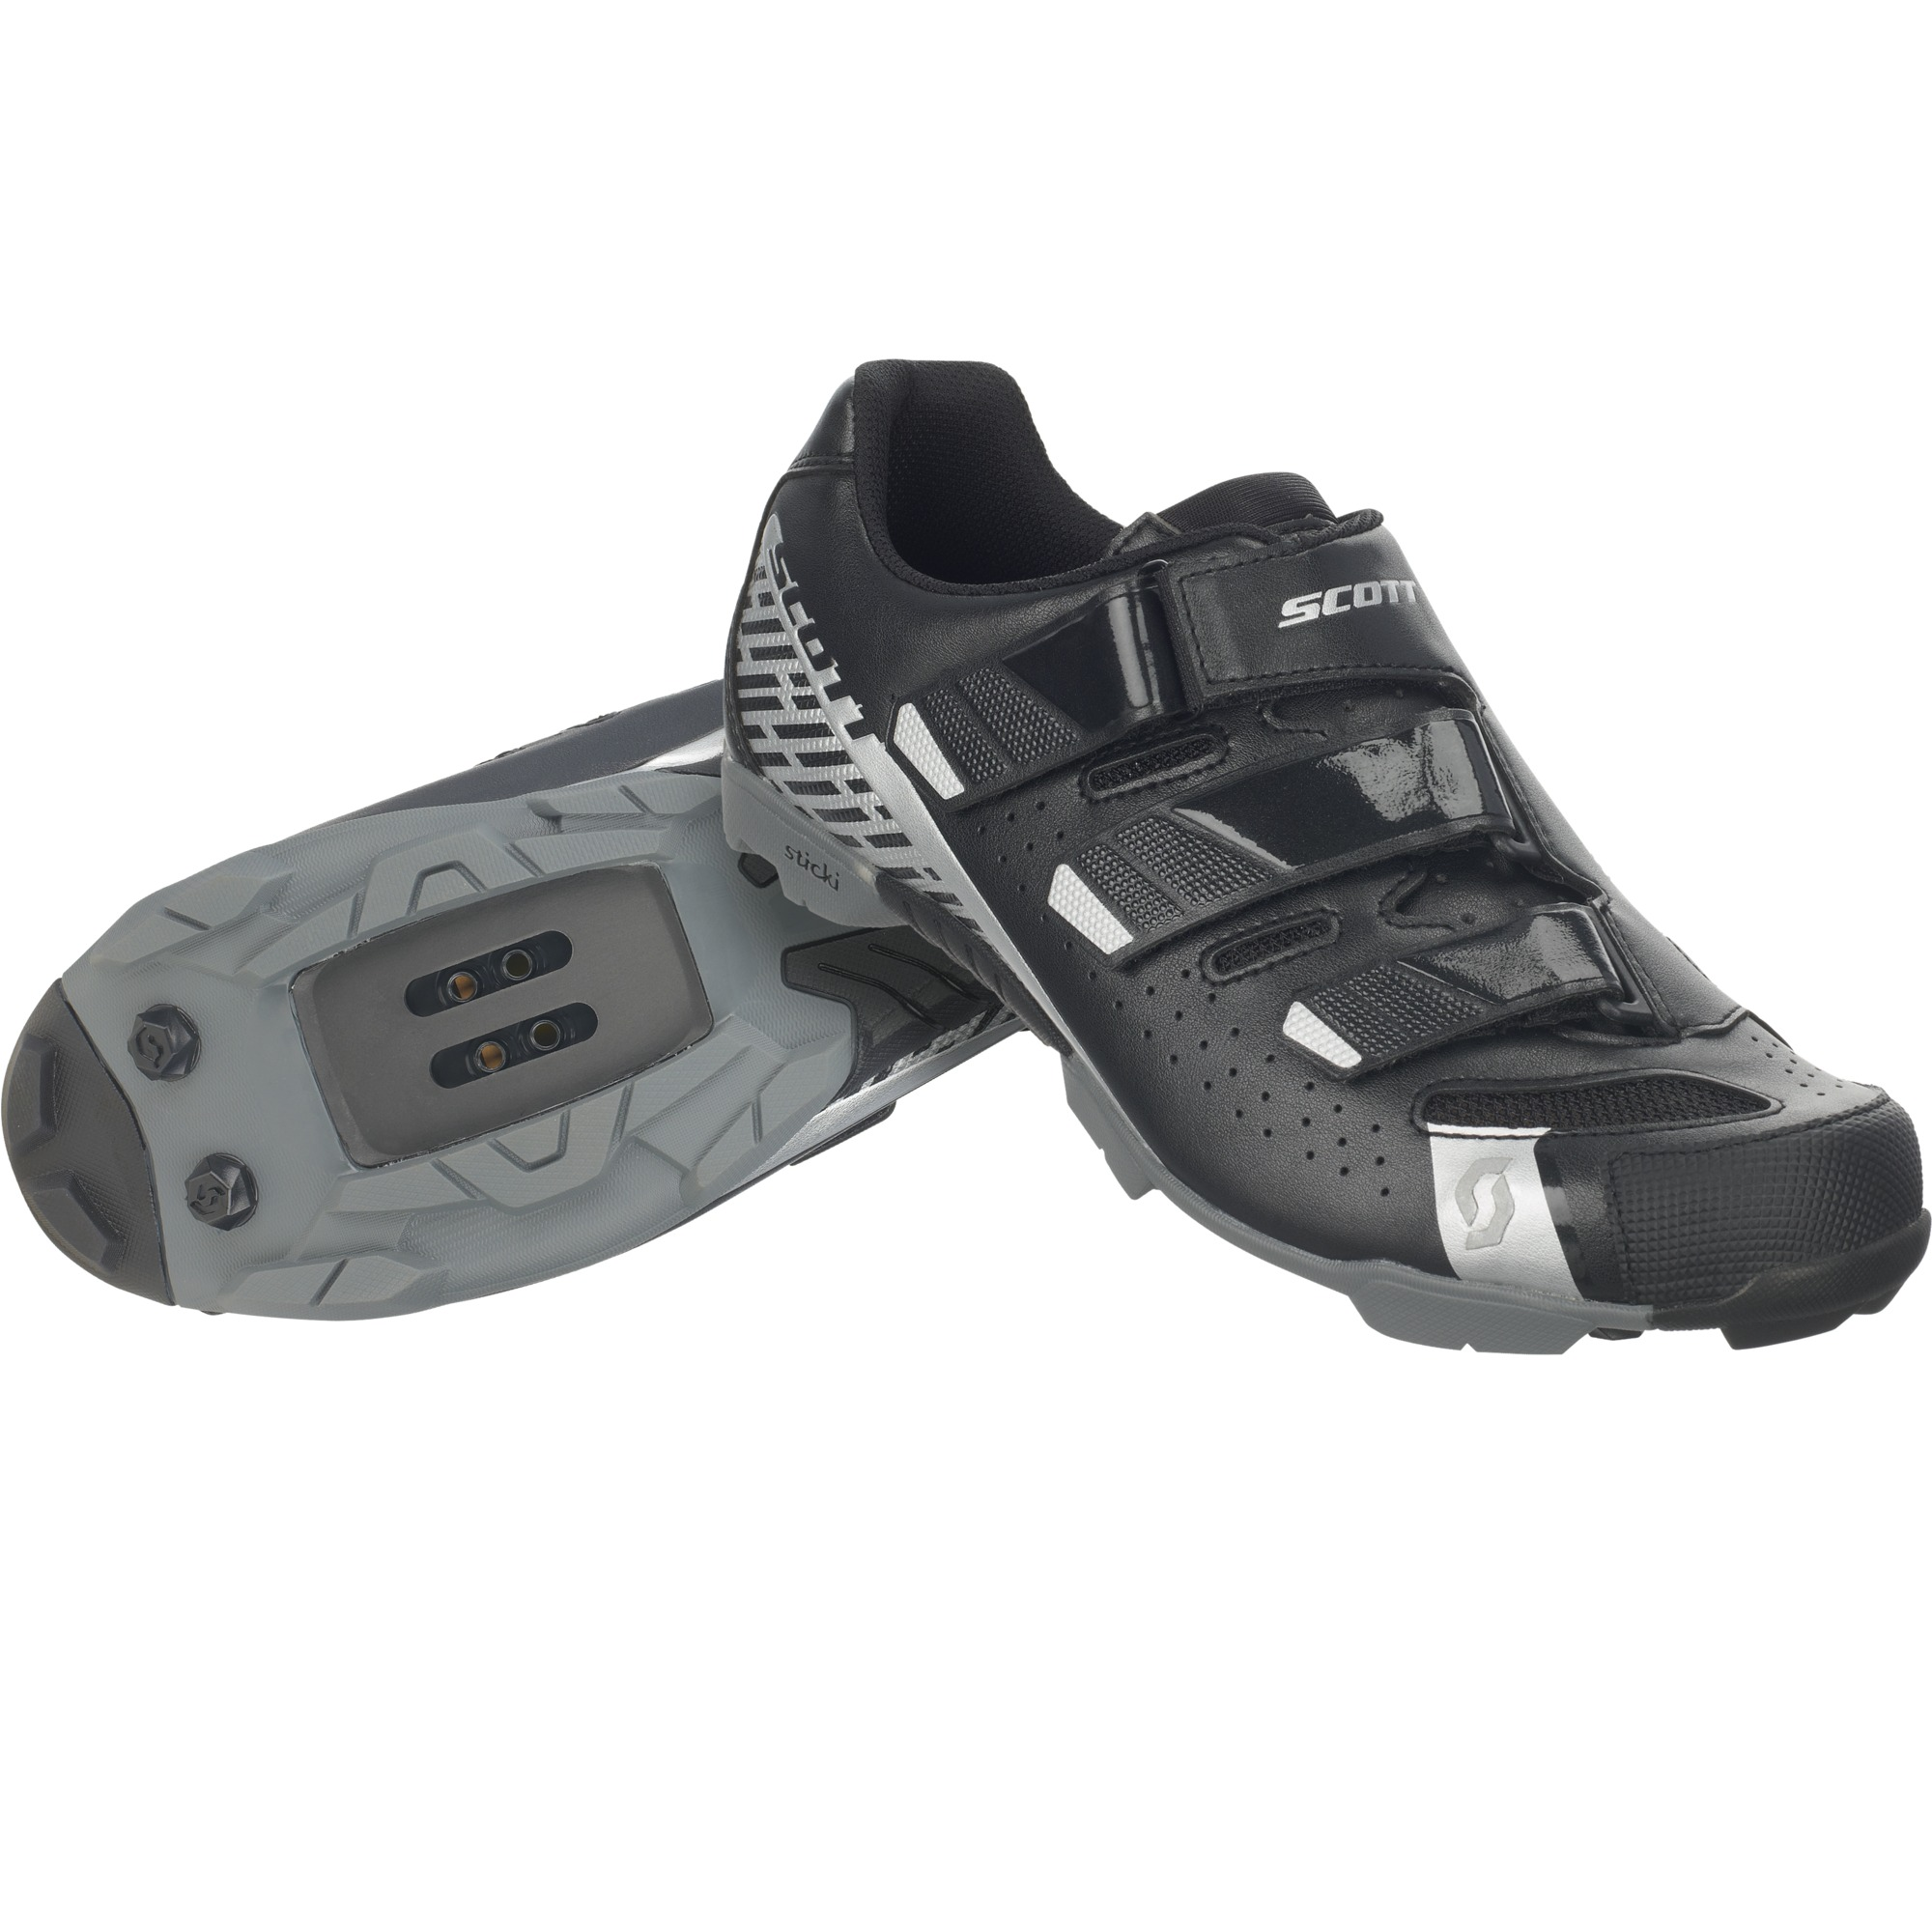 SCOTT Mtb Comp Rs Lady Shoe